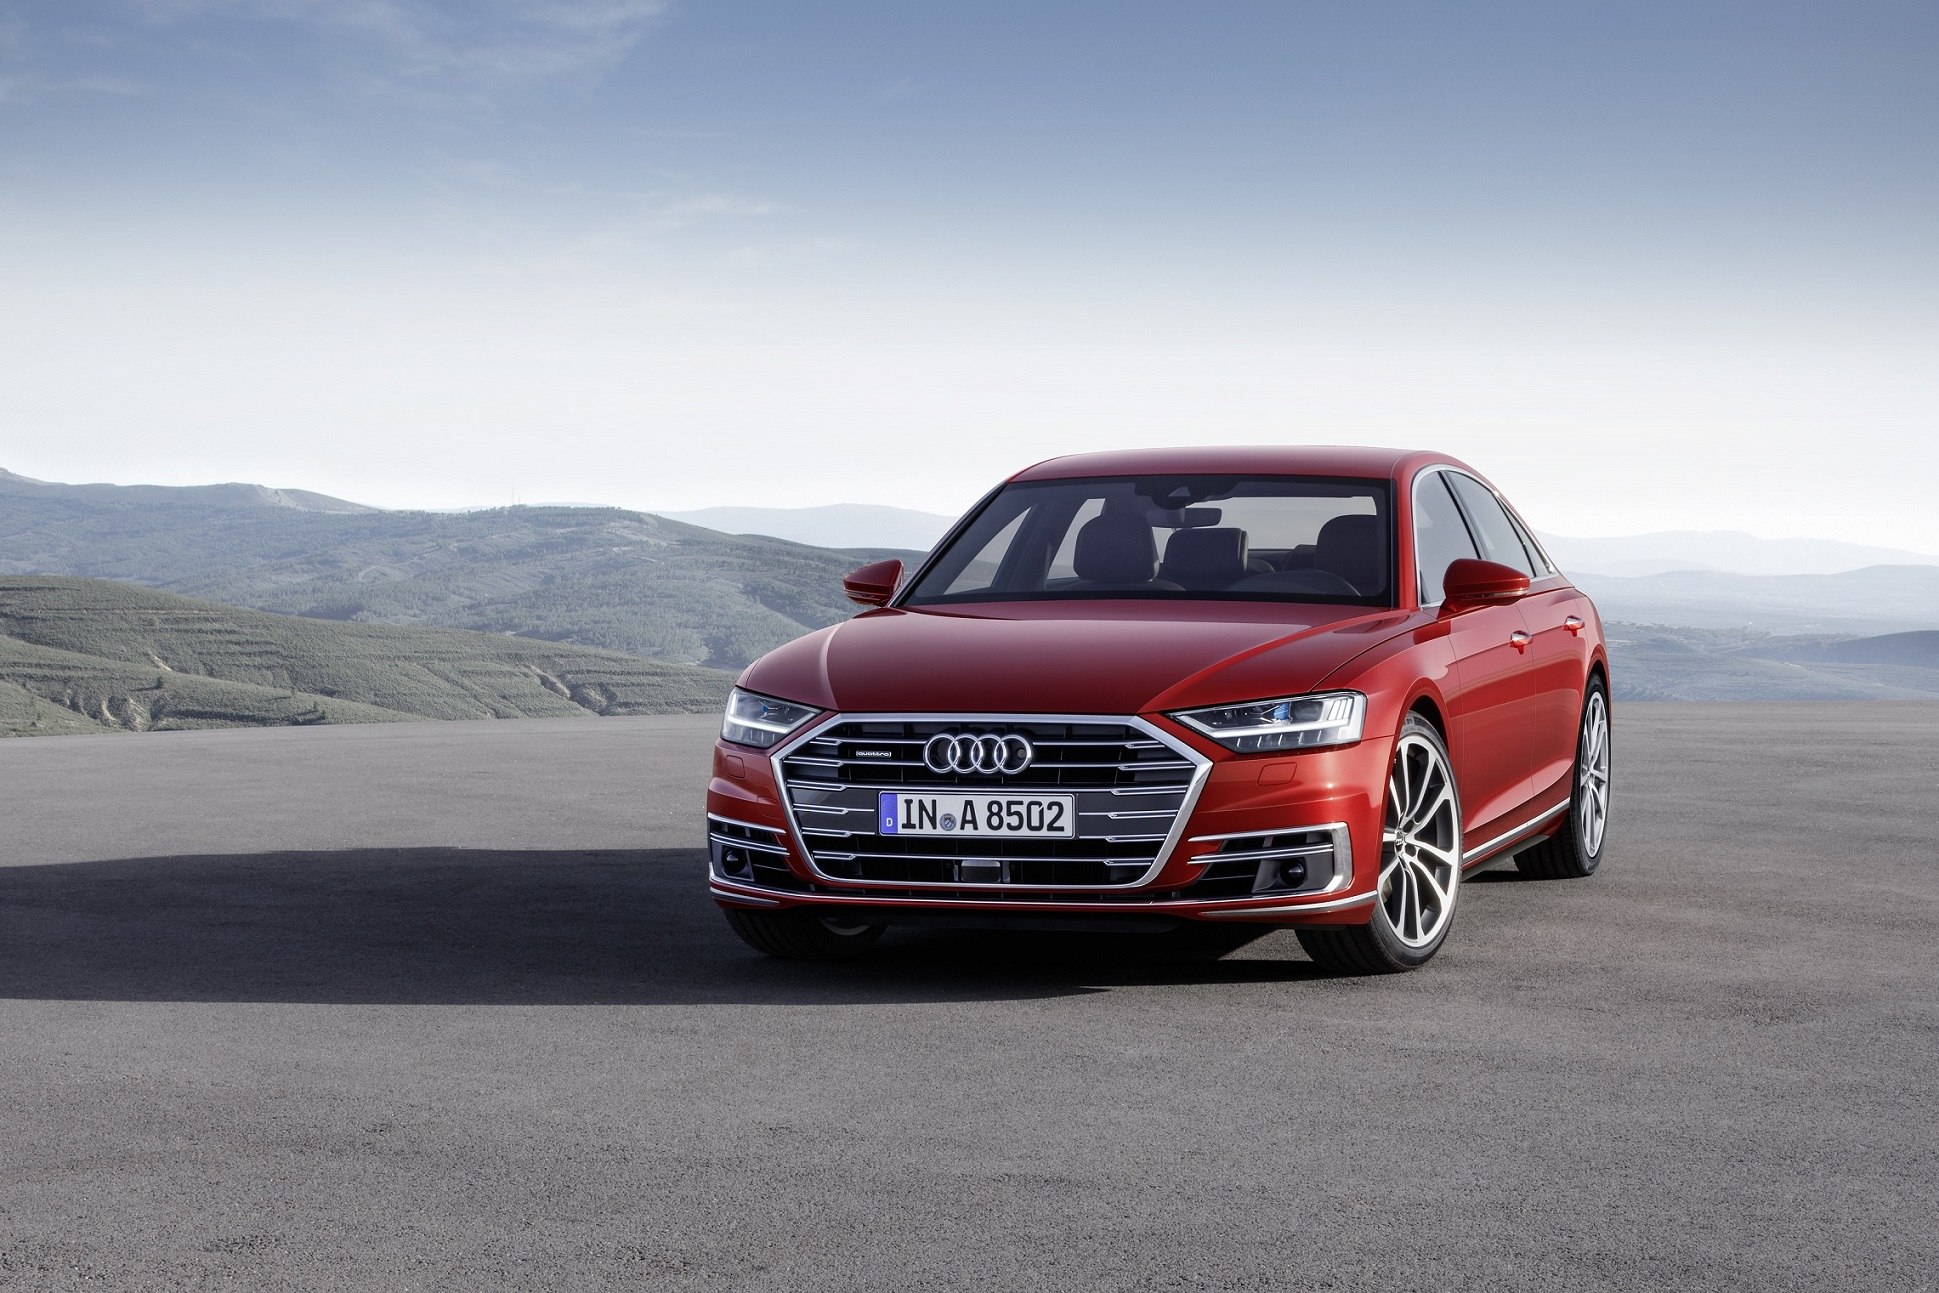 Audi Maintains Lead in Autonomous Driving with Launch of A8 at Future Mobility Forum